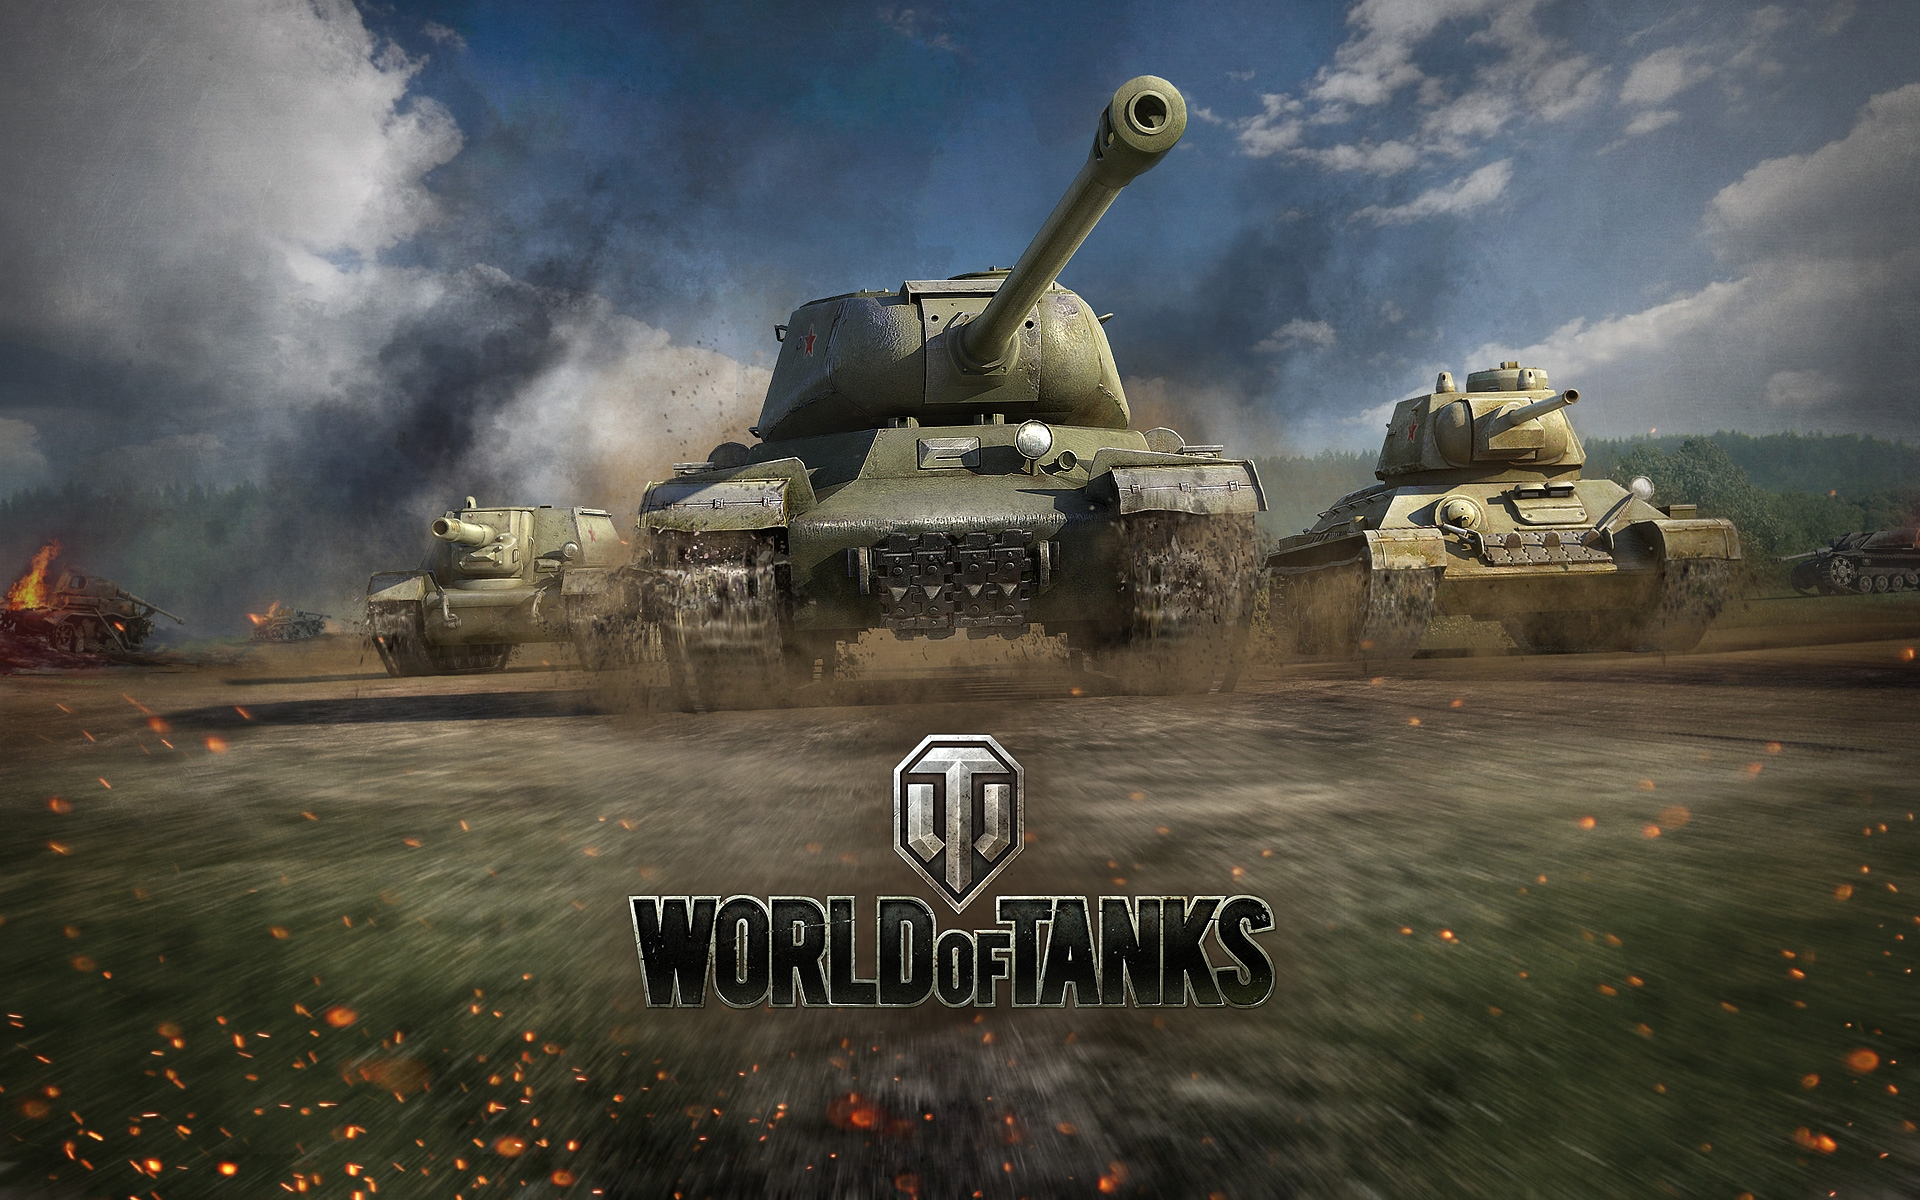 Прически в world of tanks